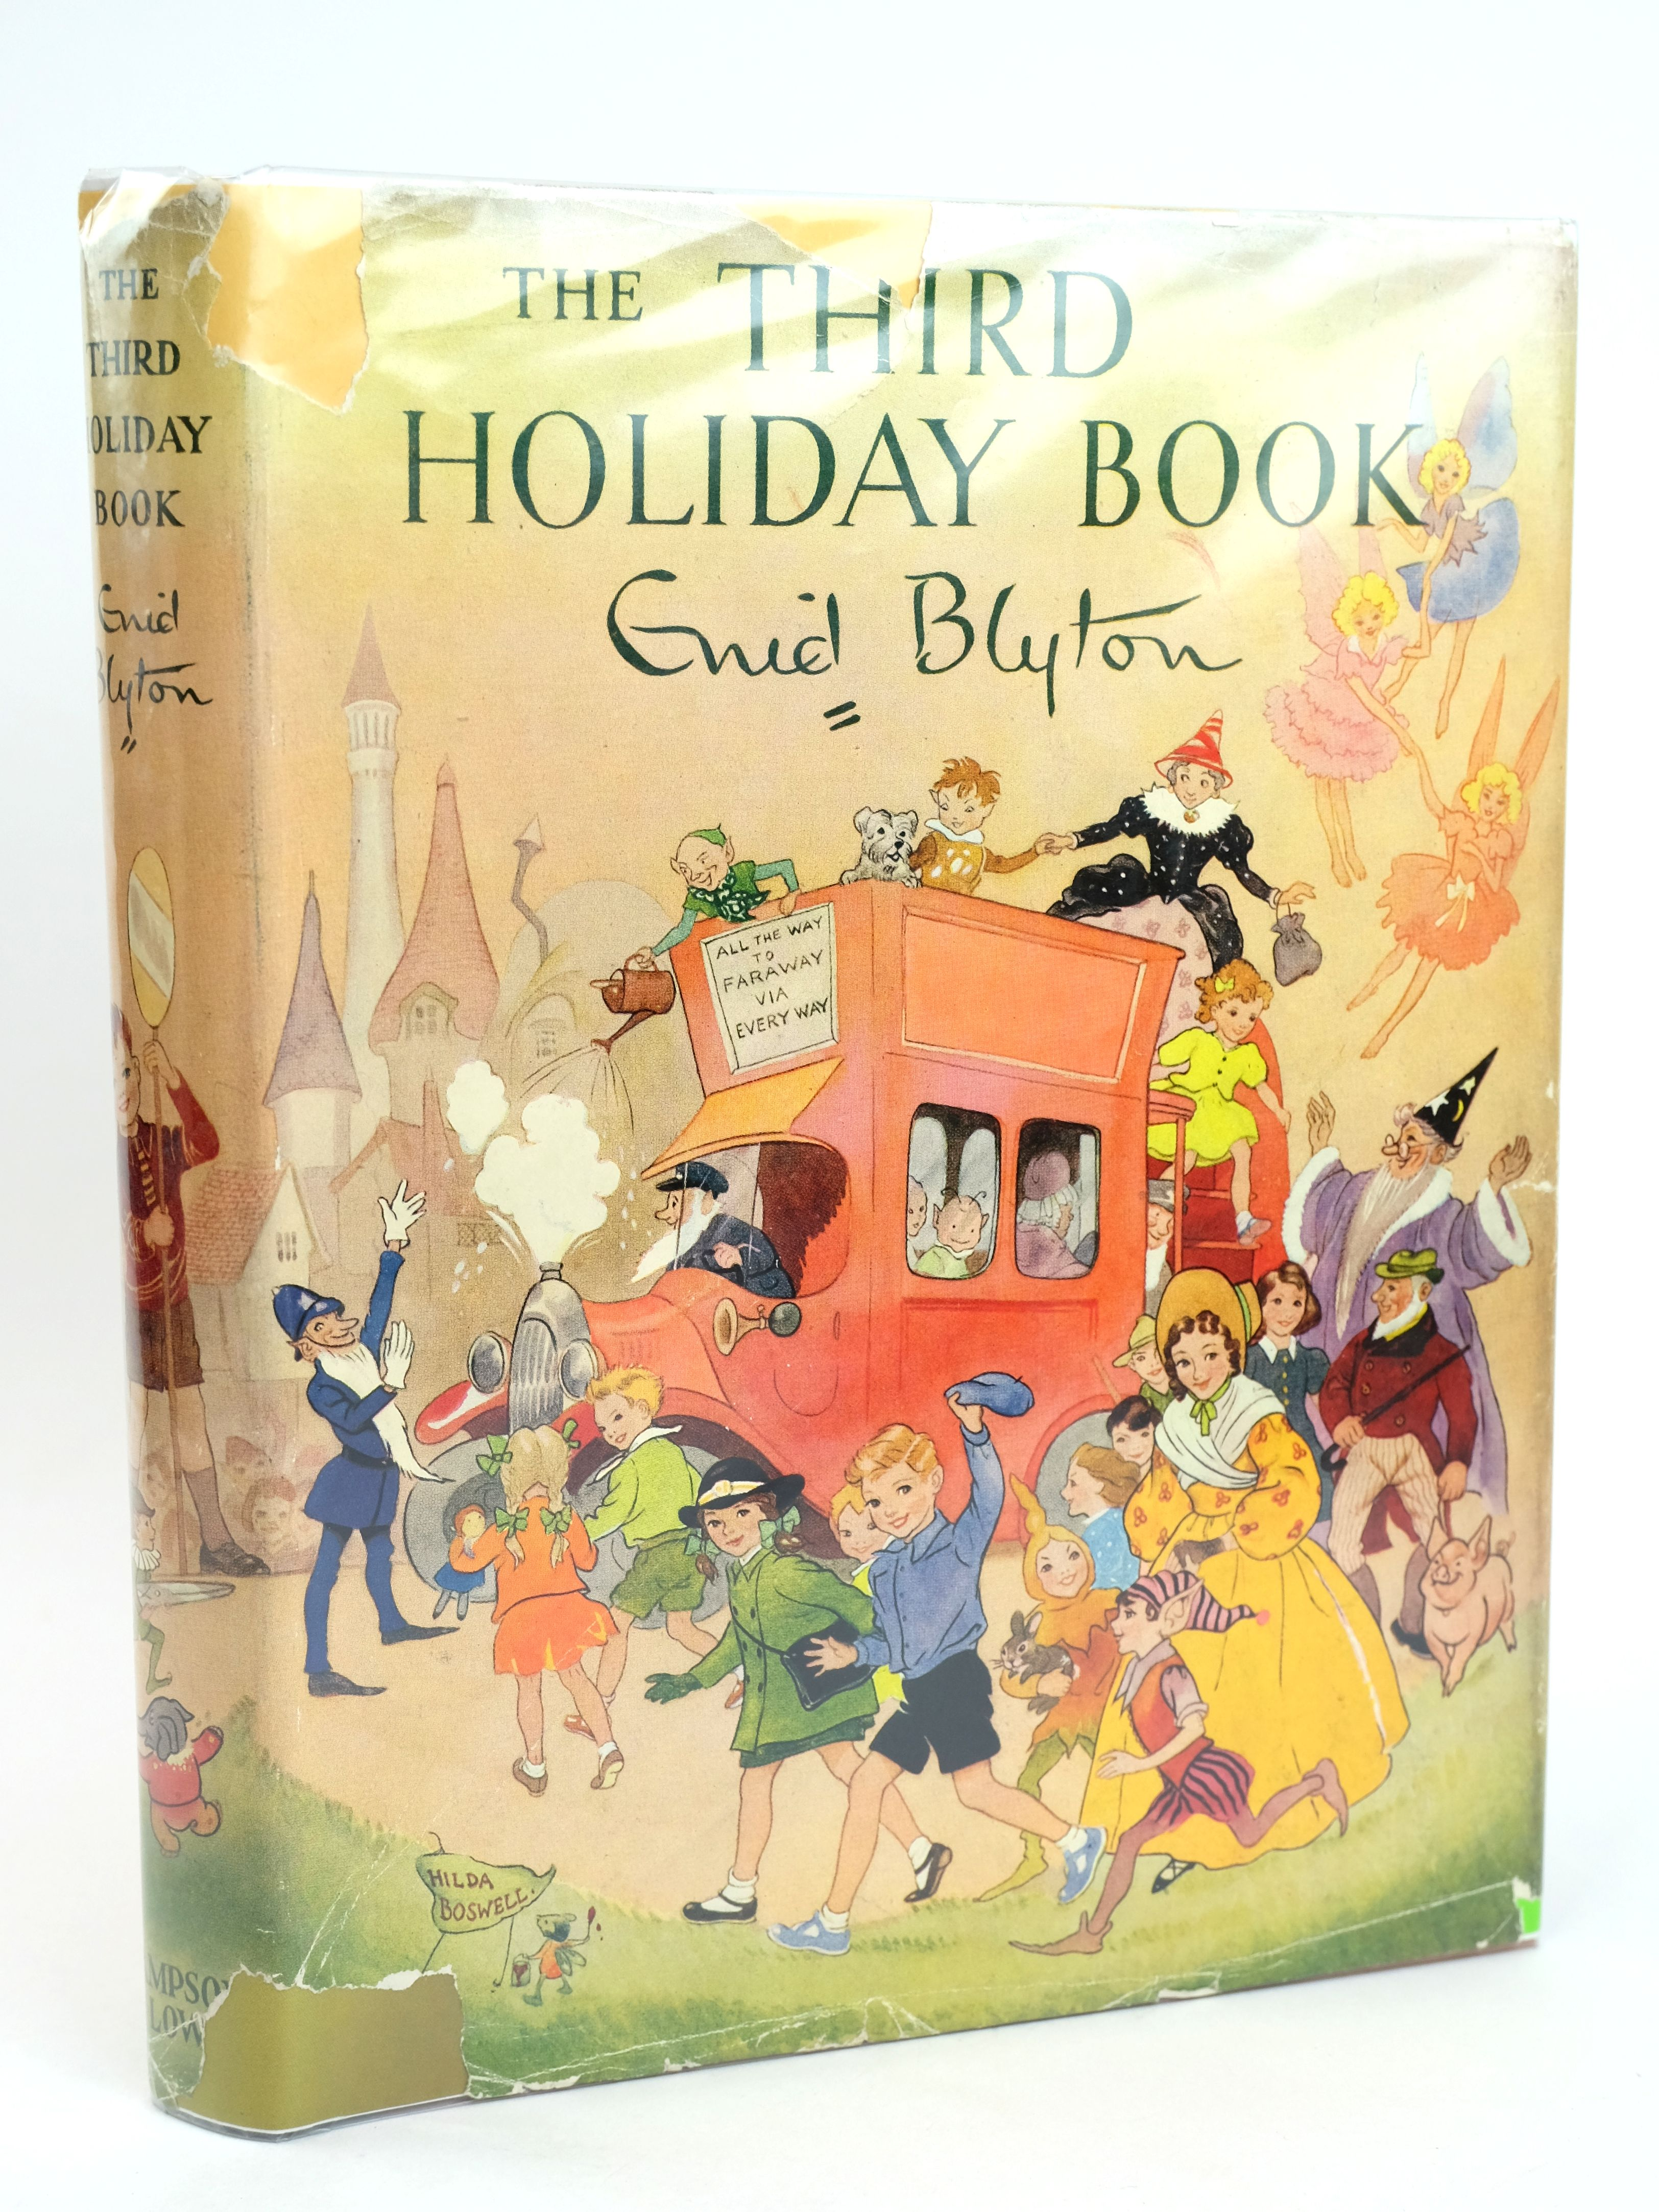 Photo of THE THIRD HOLIDAY BOOK written by Blyton, Enid illustrated by Boswell, Hilda Soper, Eileen published by Sampson Low, Marston & Co. Ltd. (STOCK CODE: 1318589)  for sale by Stella & Rose's Books